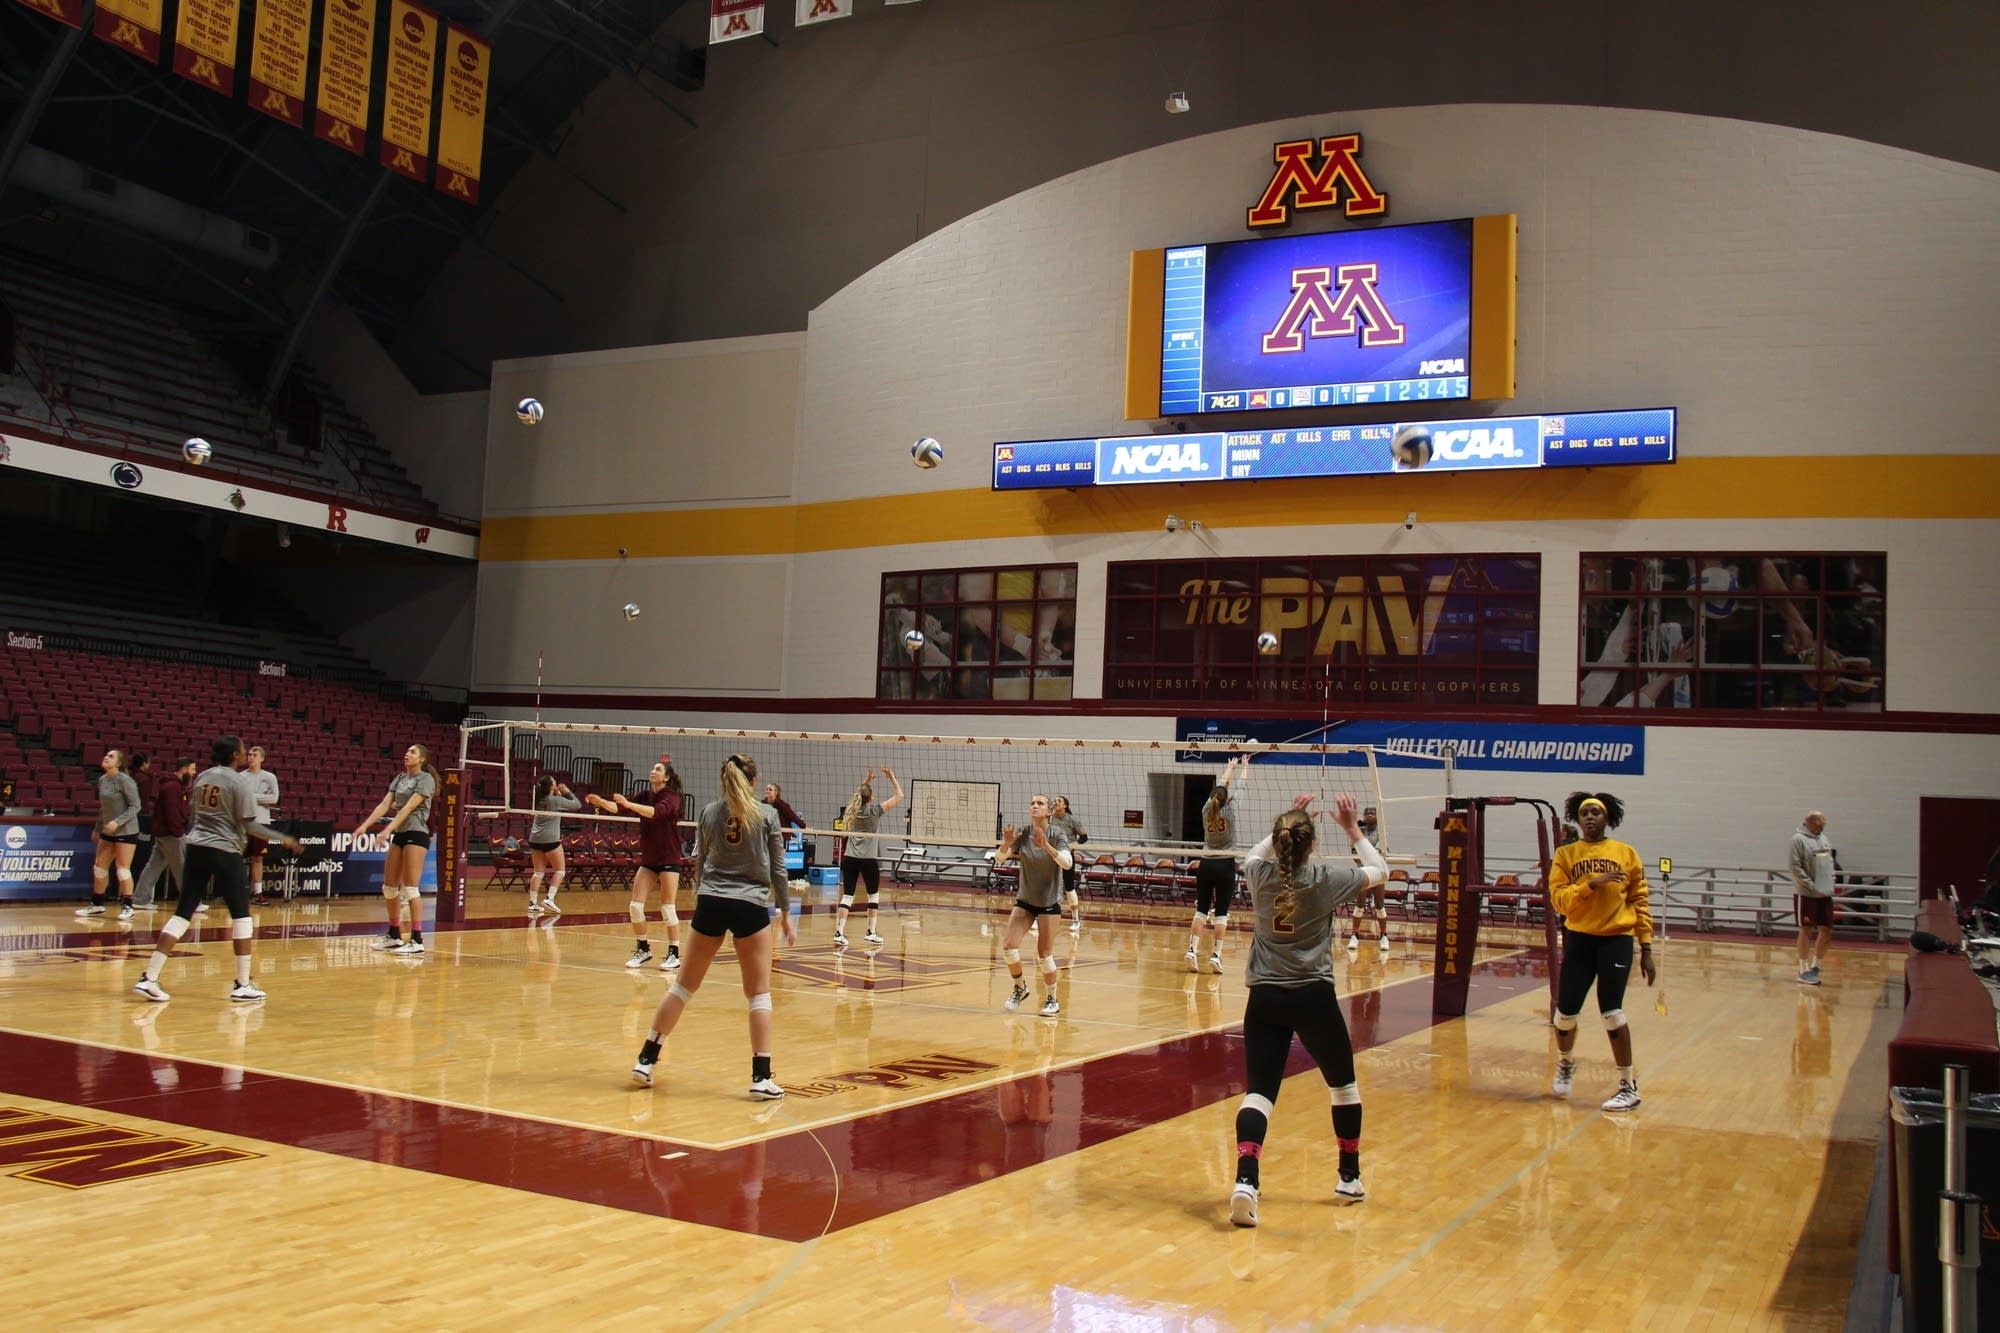 The University of Minnesota Women's Volleyball Team practices.